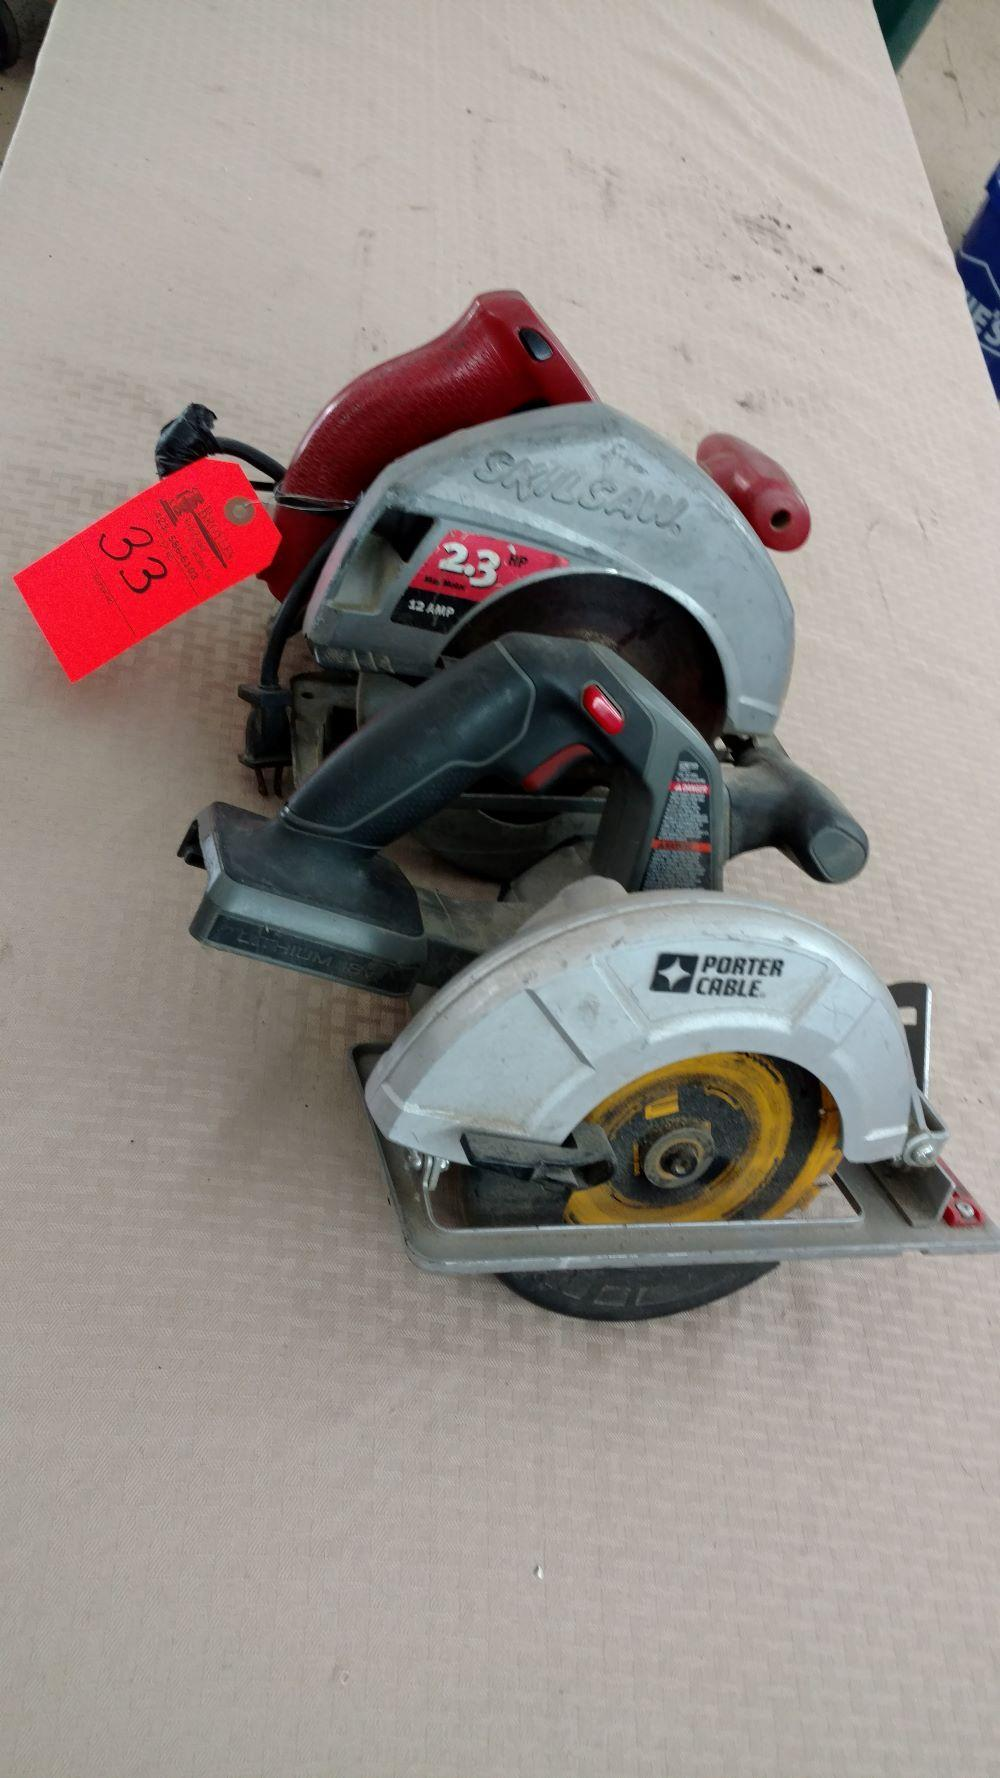 Milwaukee circular saw, Porter cable circular saw